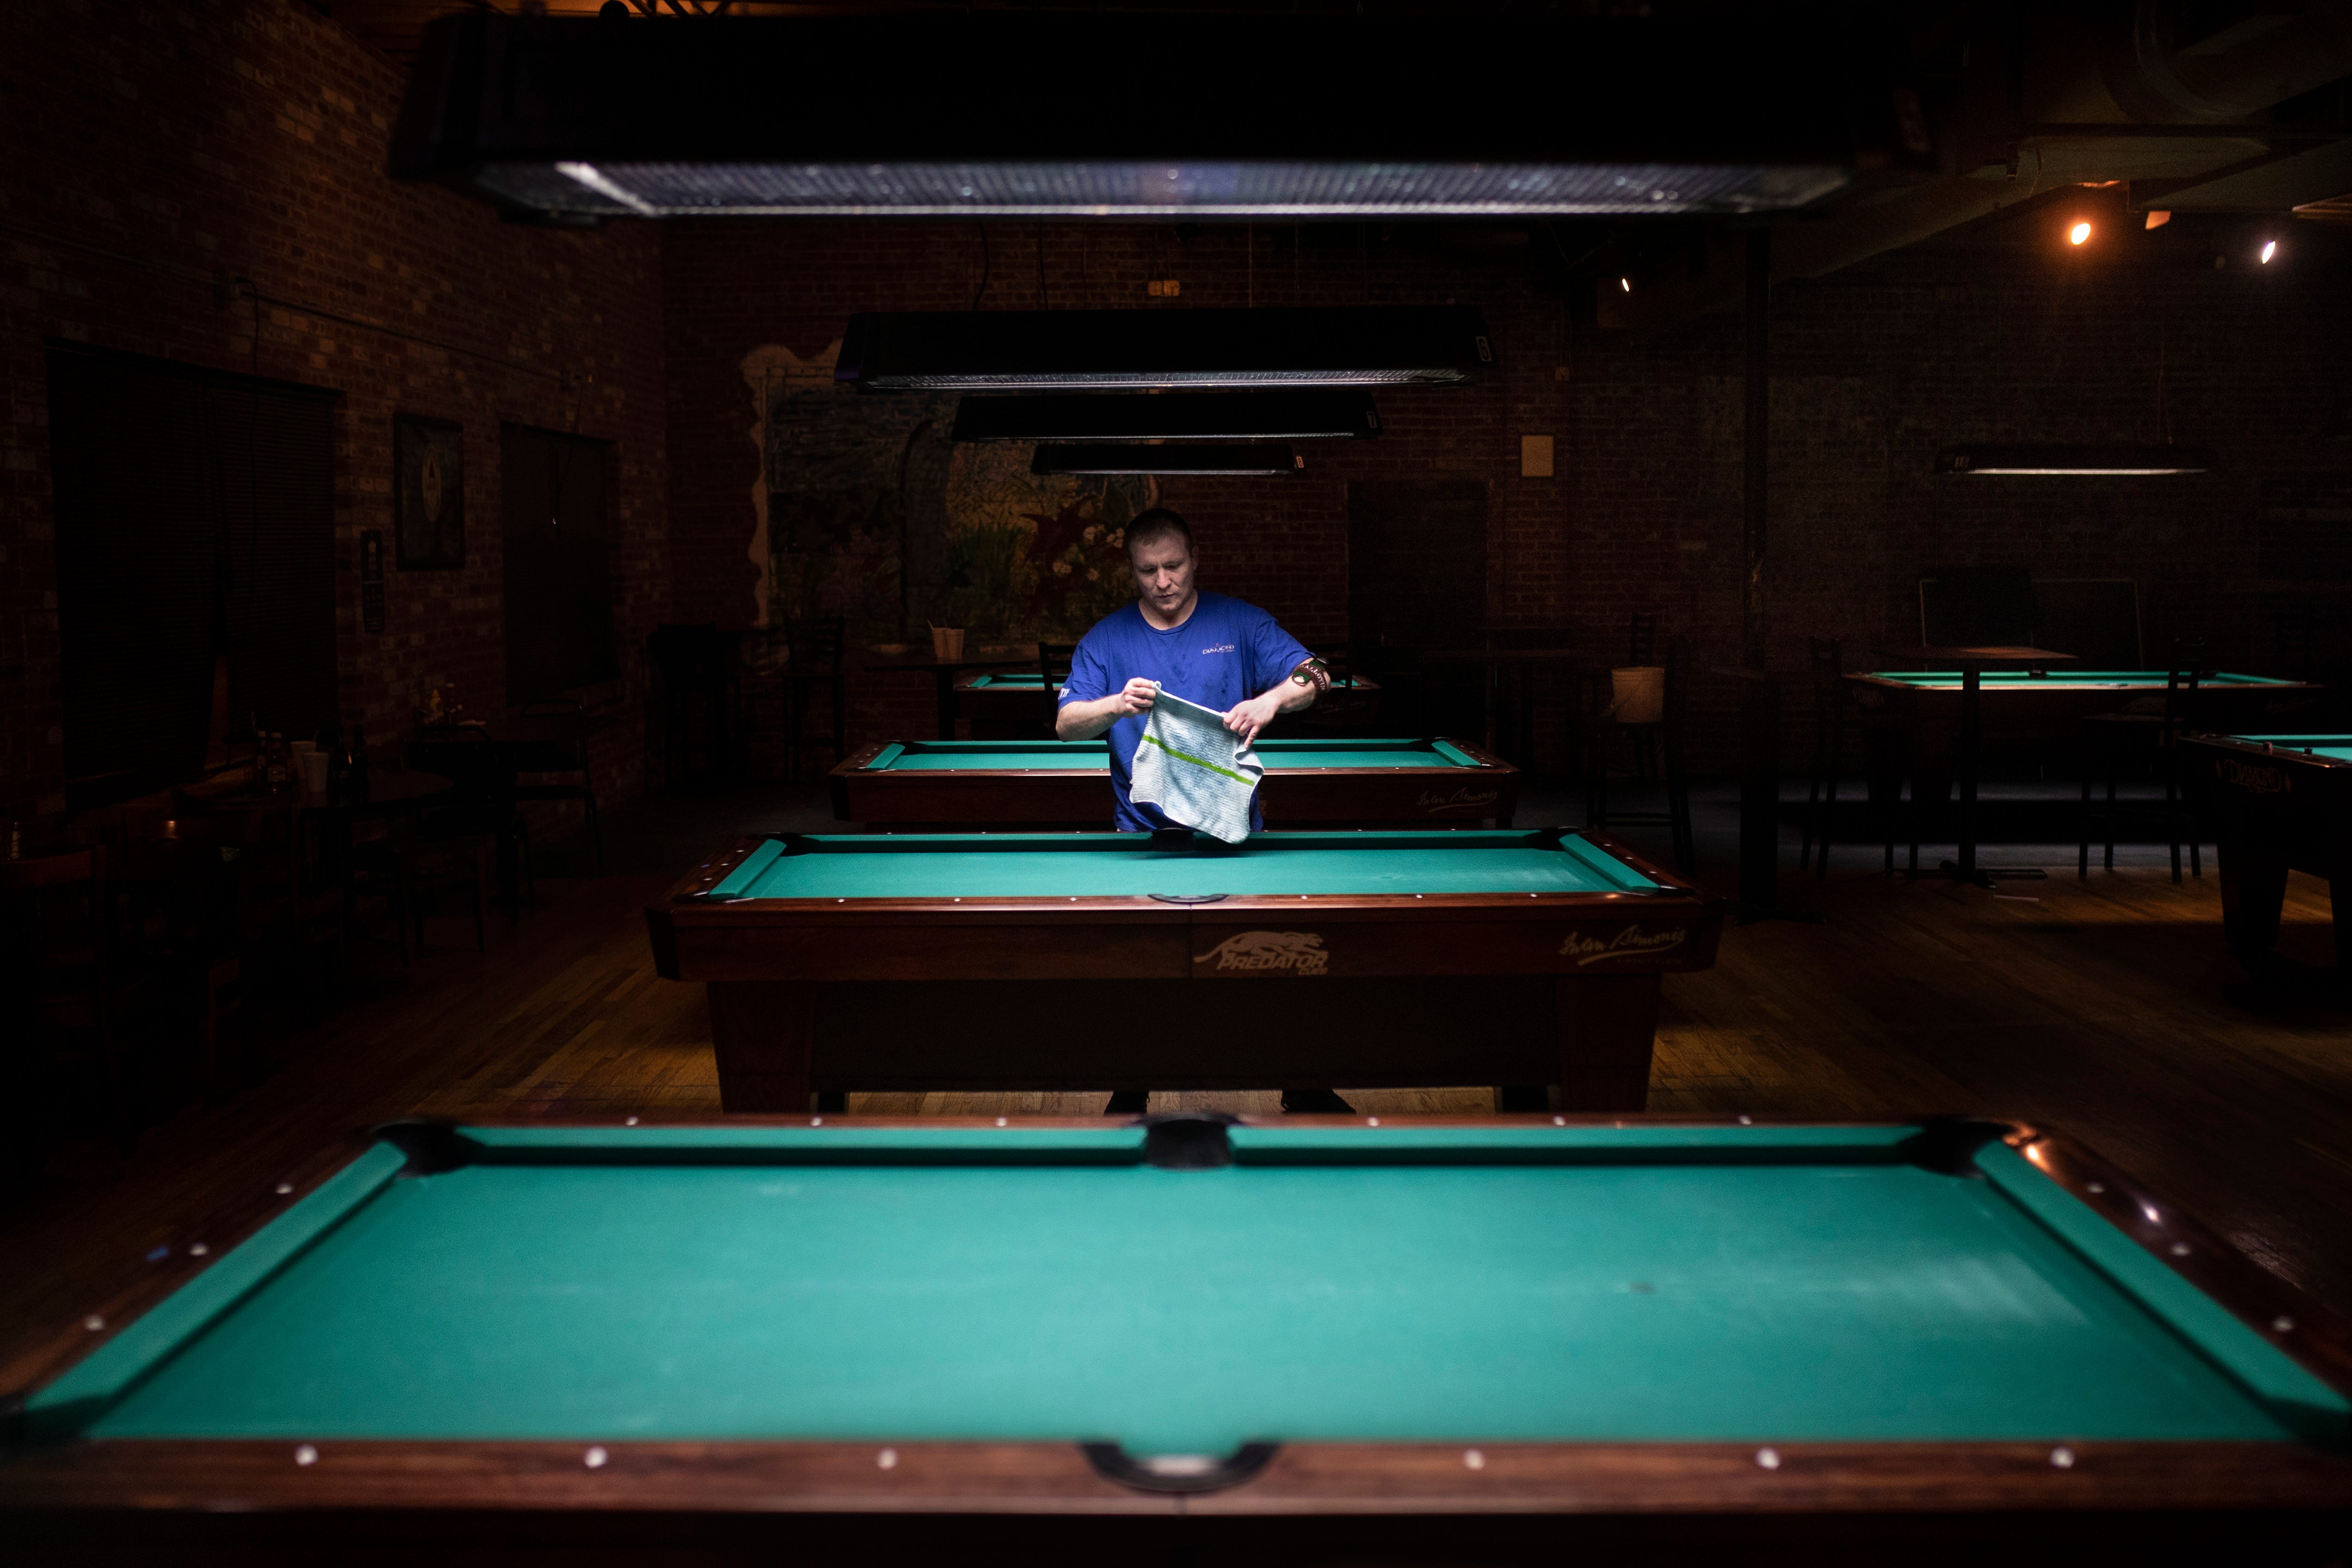 """11:47 PM  Carl Wilkinson cleans the tables at Diamond Pub & Billards on Barret Avenue on Jan. 13, 2020. """"I don't play much pool myself, maybe a couple games a year,"""" Wilkinson said. """"But, if guys shoot and there's chalk still there, it'll affect how the ball moves. We make sure and clean them and have them fresh and ready for every morning."""""""